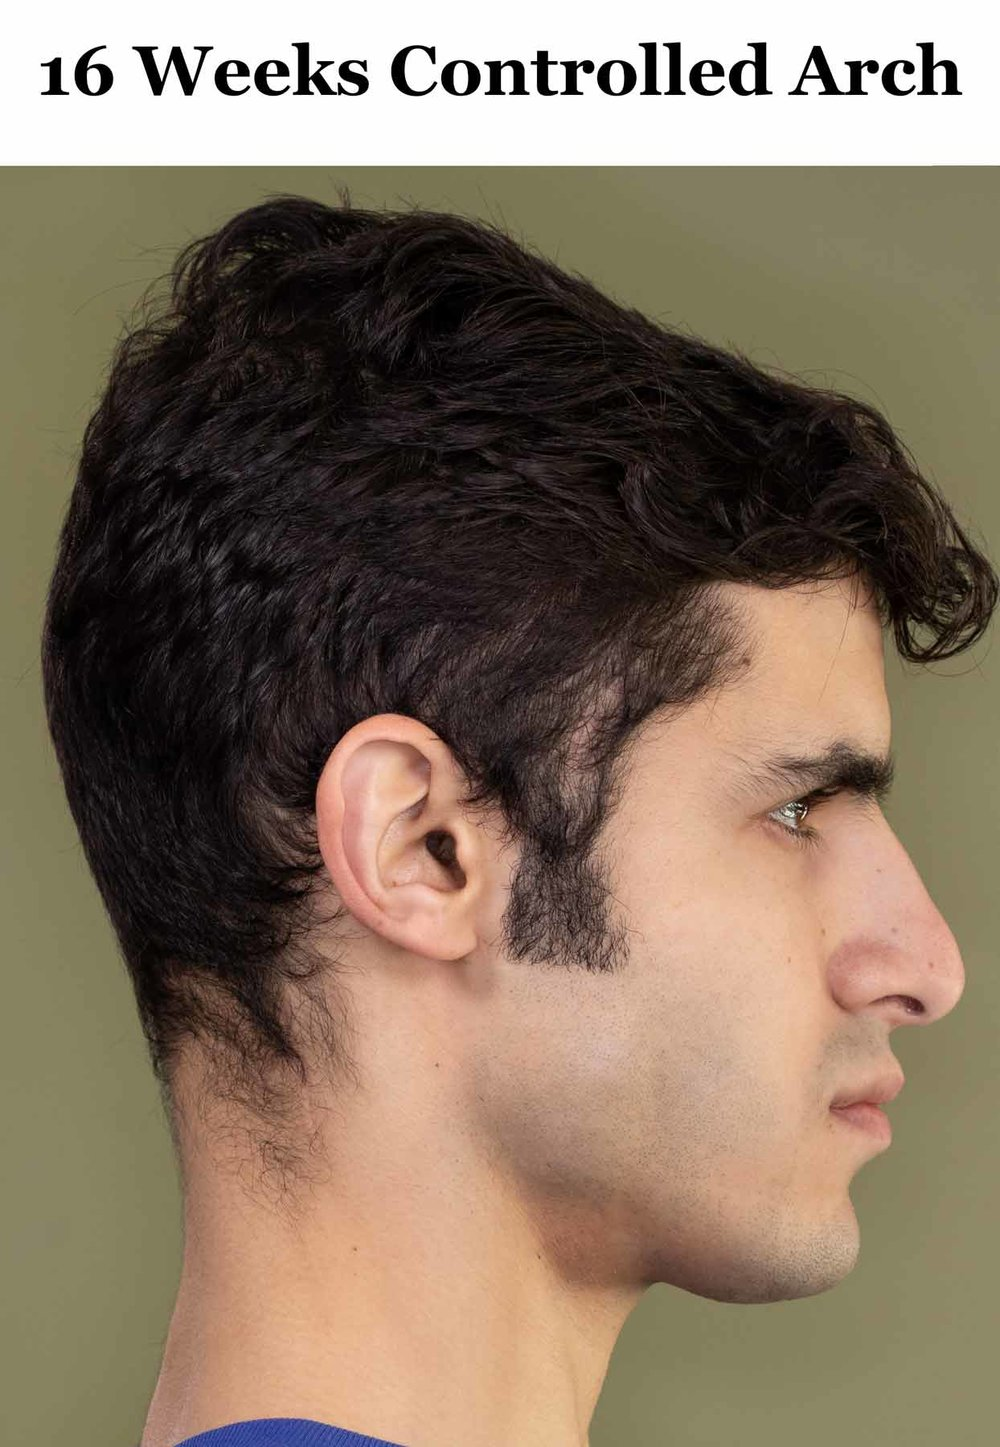 ca_16-weeks_side-profile.jpg